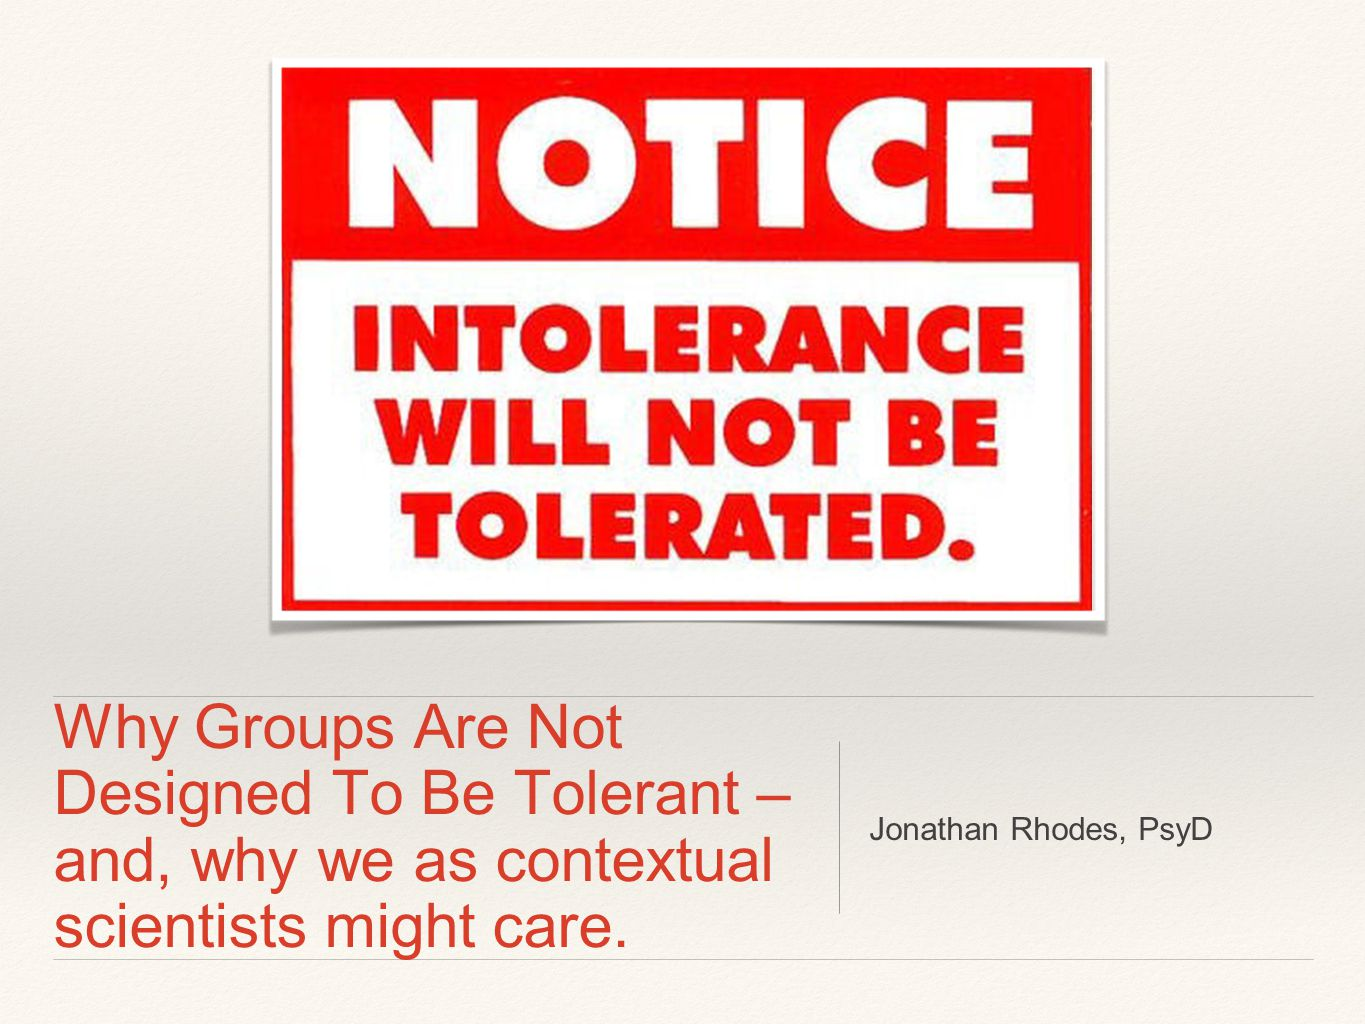 Why Groups Are Not Designed To Be Tolerant – and, why we as contextual scientists might care.